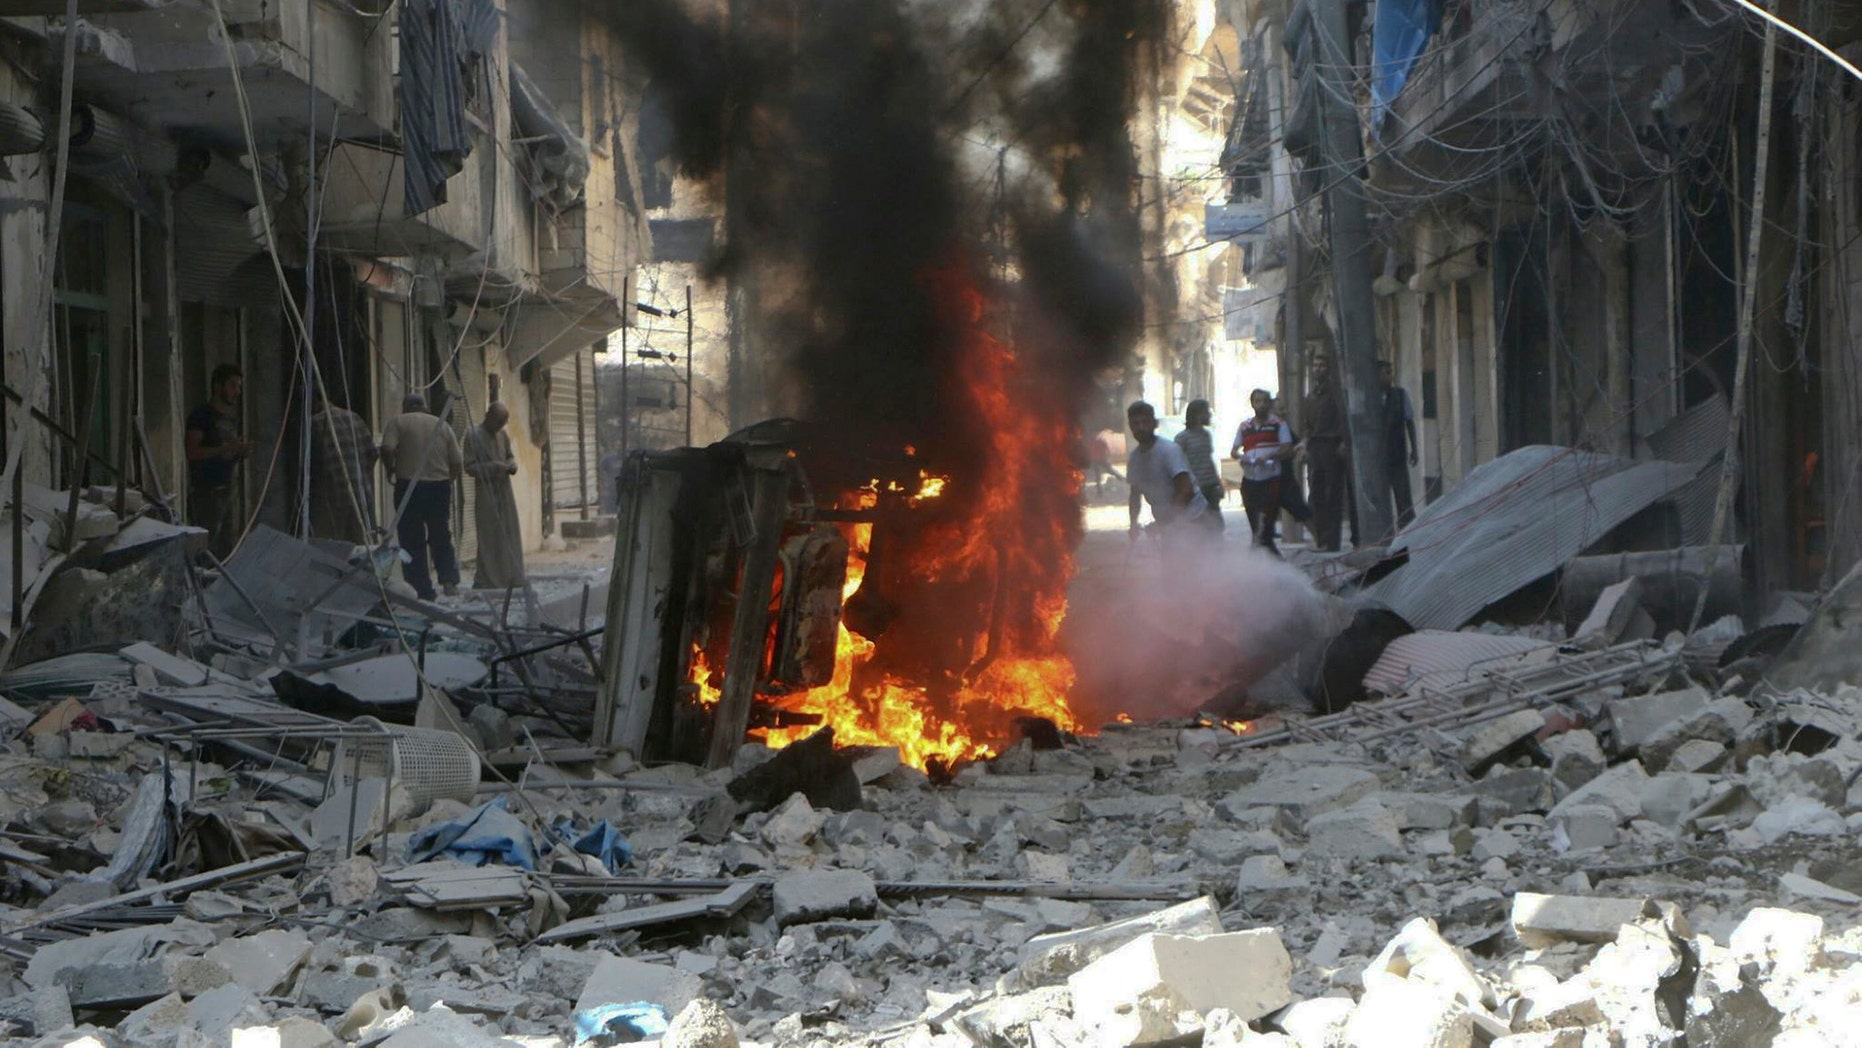 A suicide bomber targeted a wedding in Syria